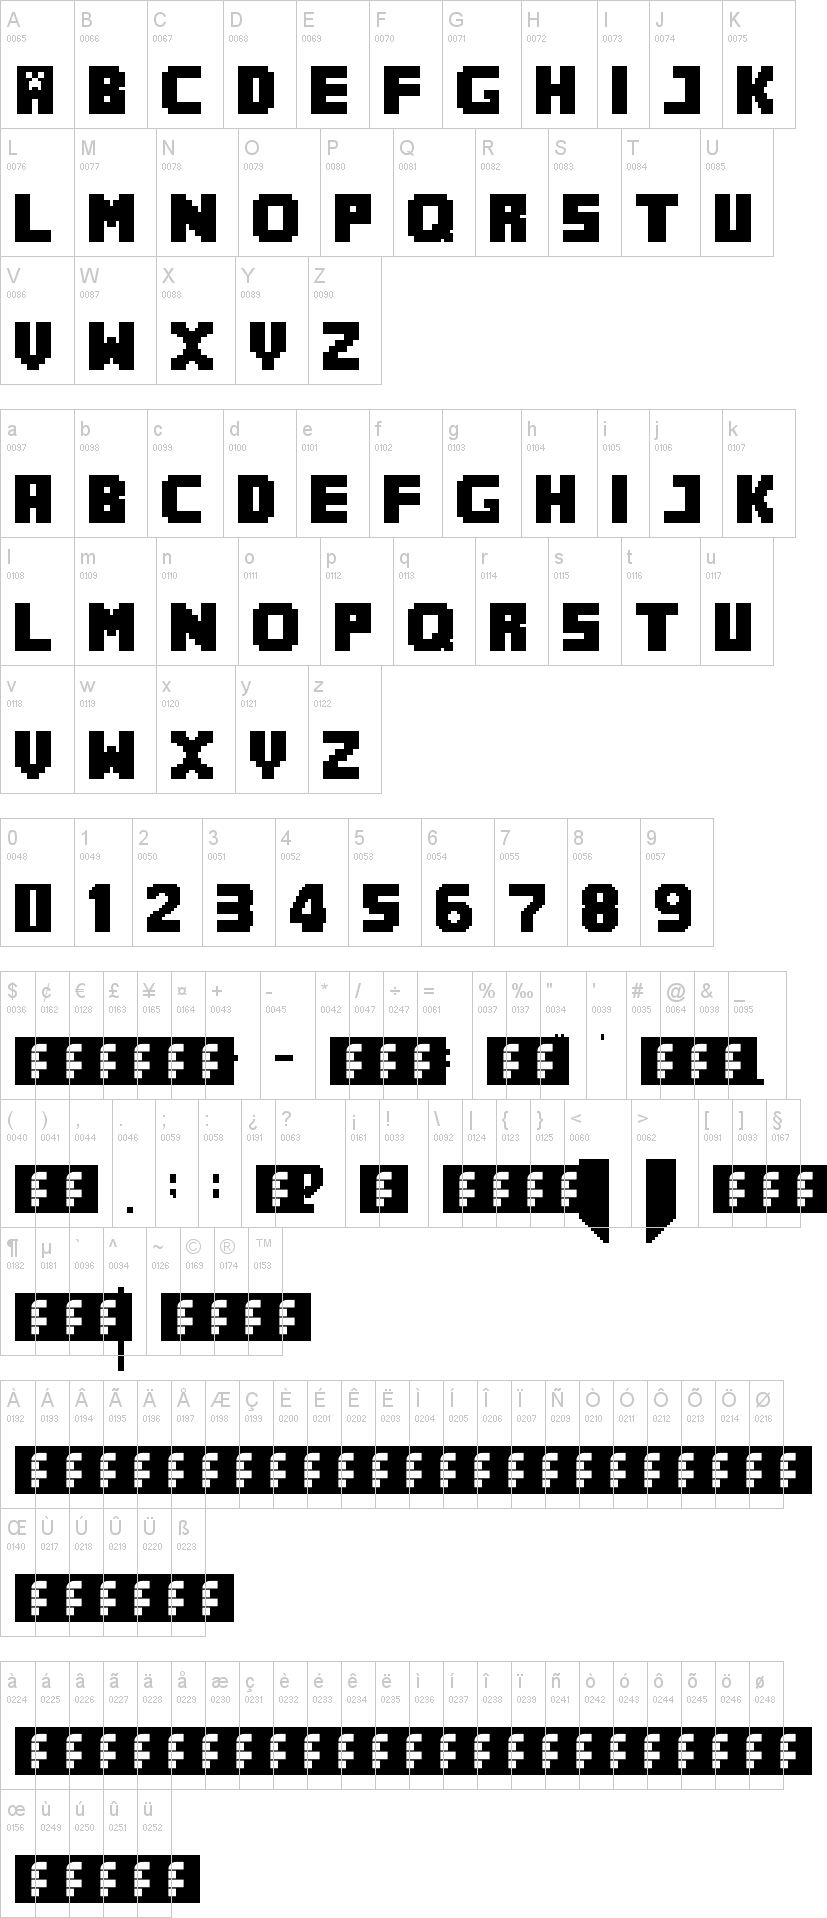 MineCrafter The Perfect Font For All Minecraft Party Print Outs Seth Noticed That Letters I Used On His Banner Were Real